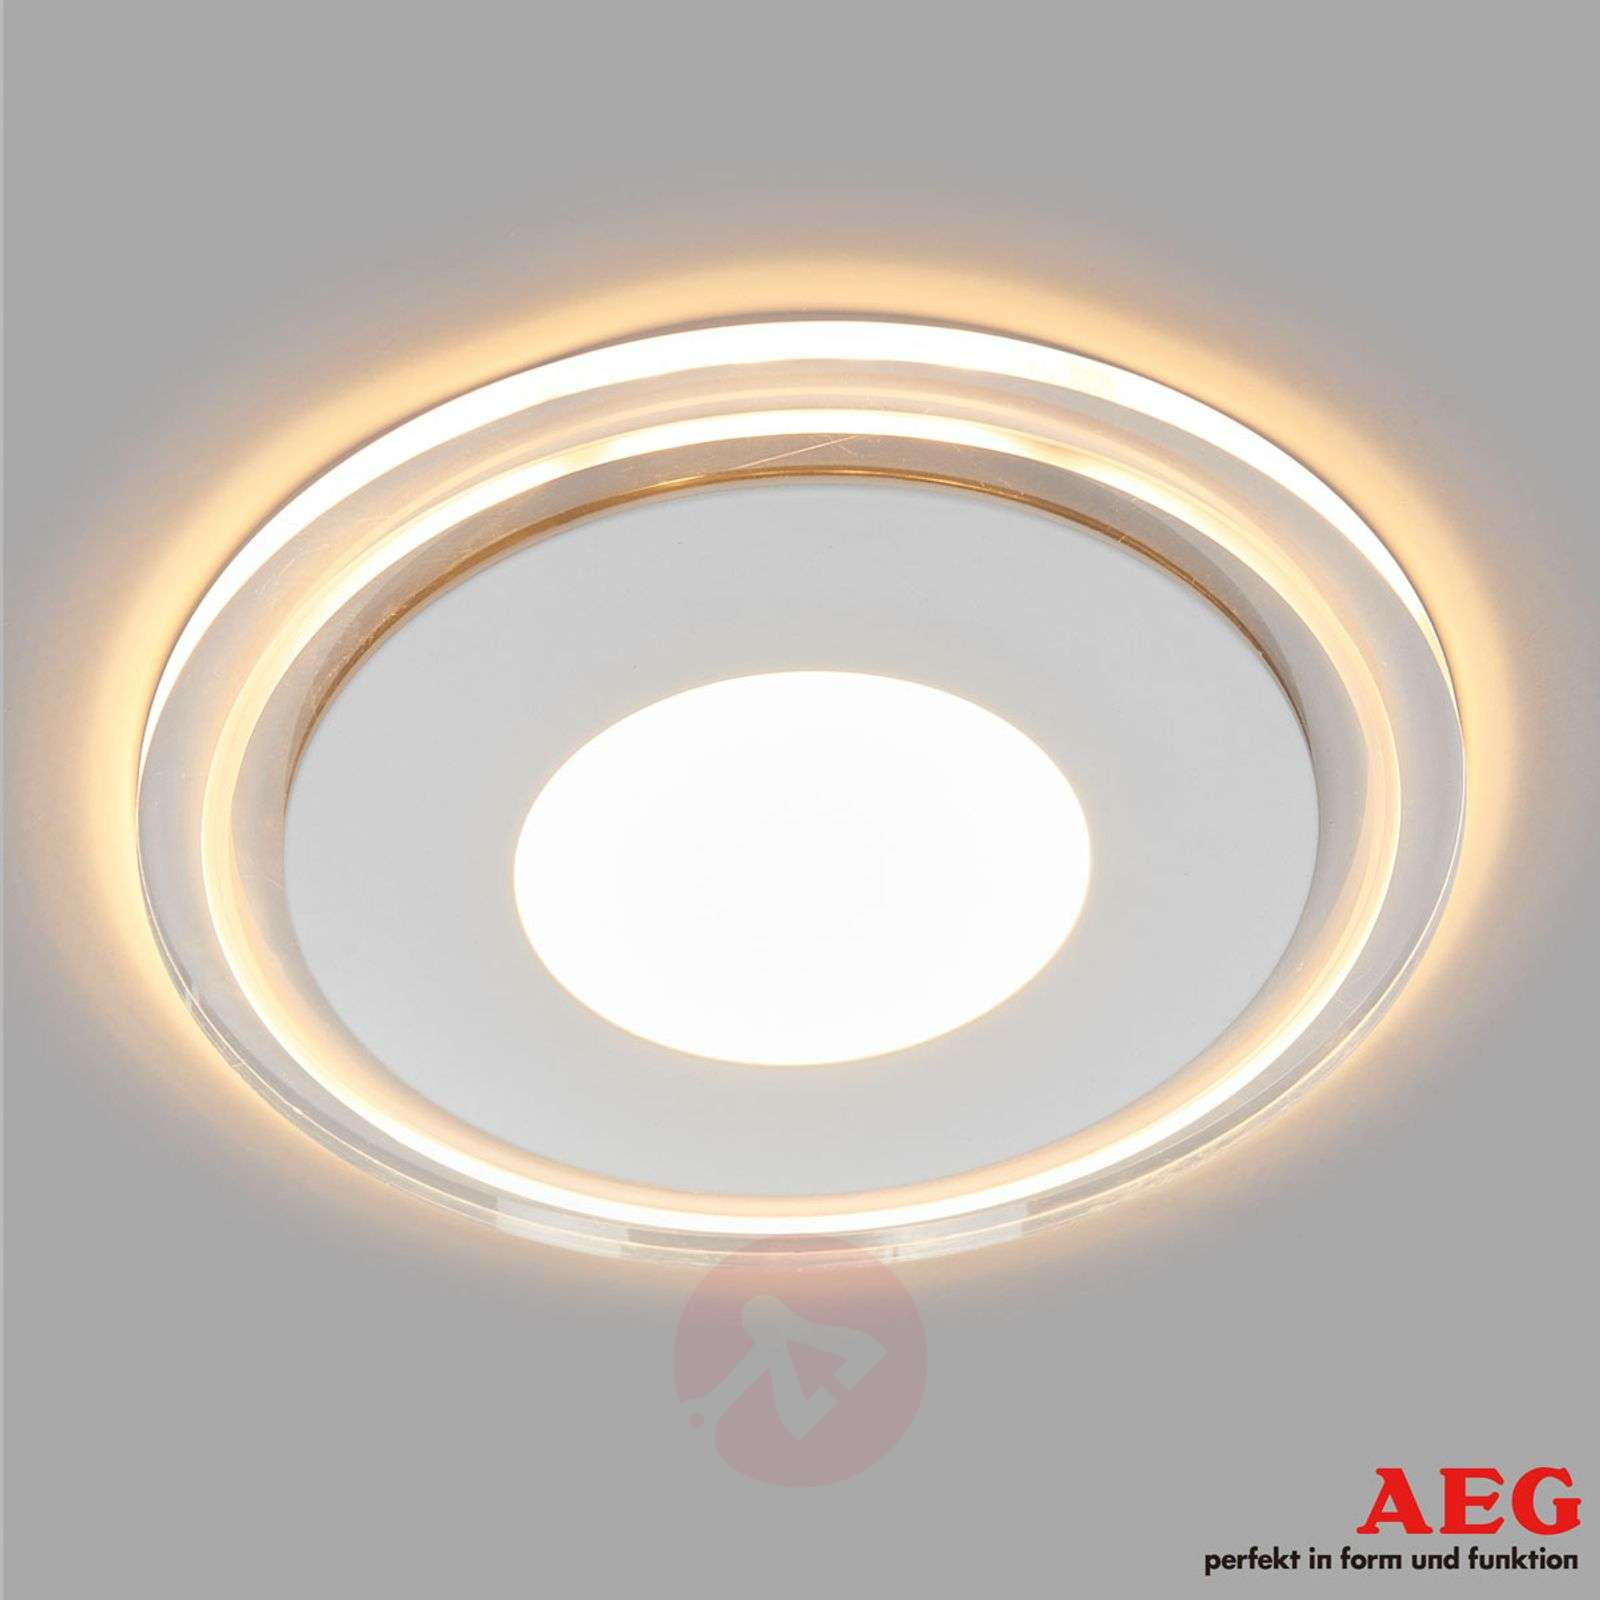 for panel lights ceiling of lighting fluorescent kitchen full suspended led fixture drop light size fixtures in recessed basement